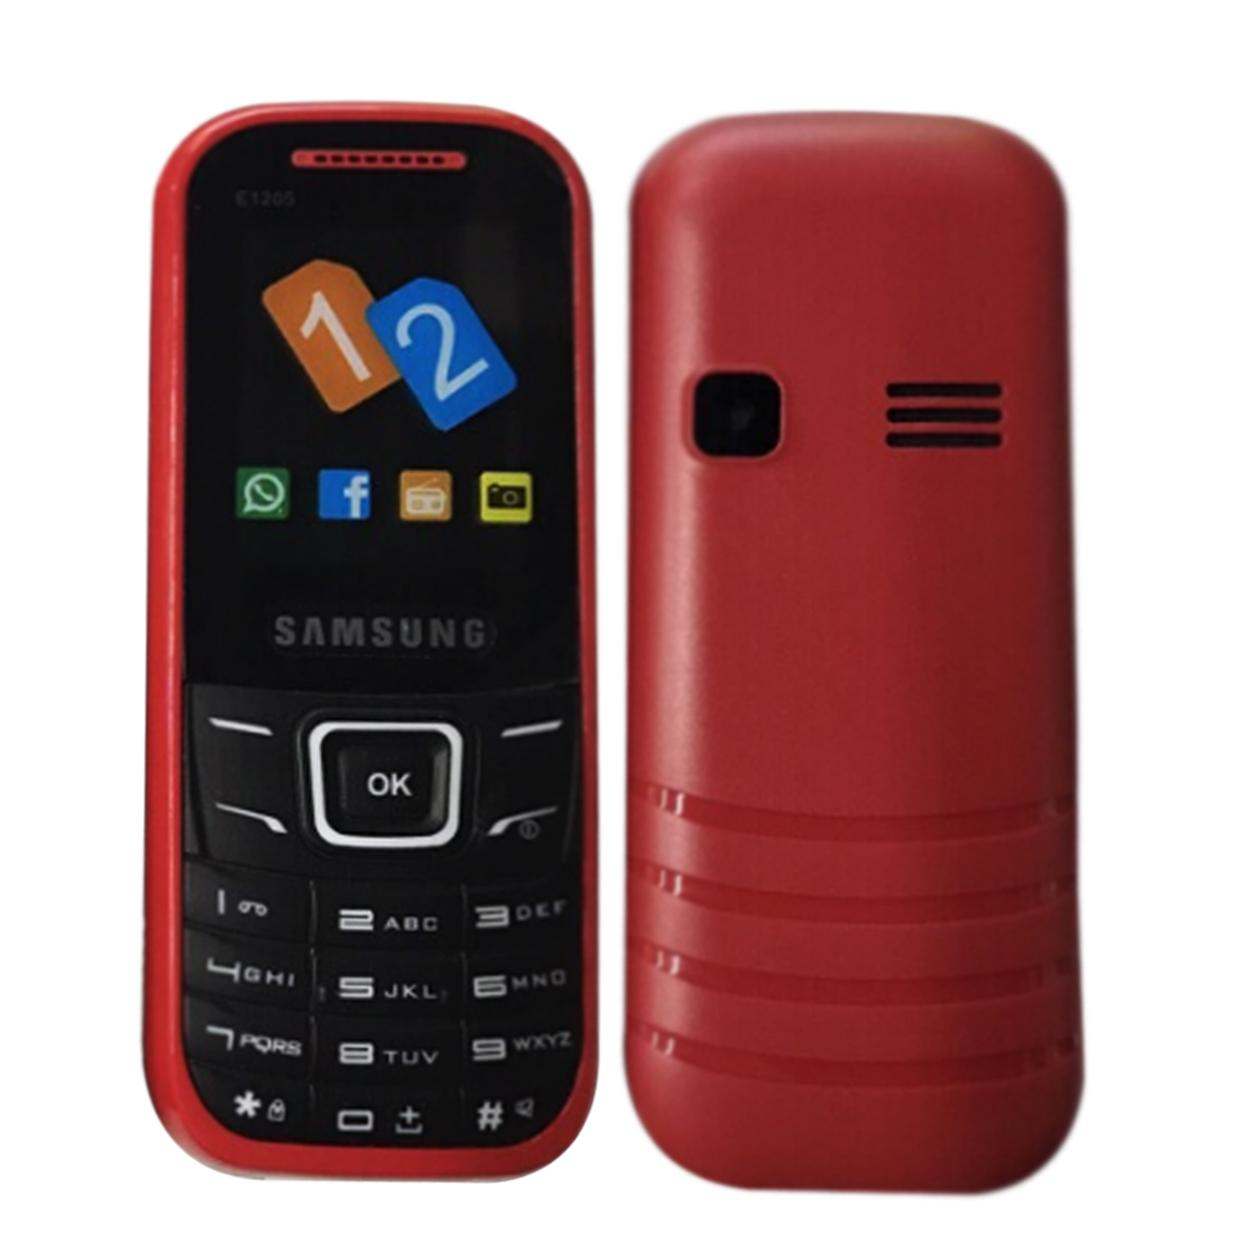 Sam-Sung E1205 Keypad Mobile Phone